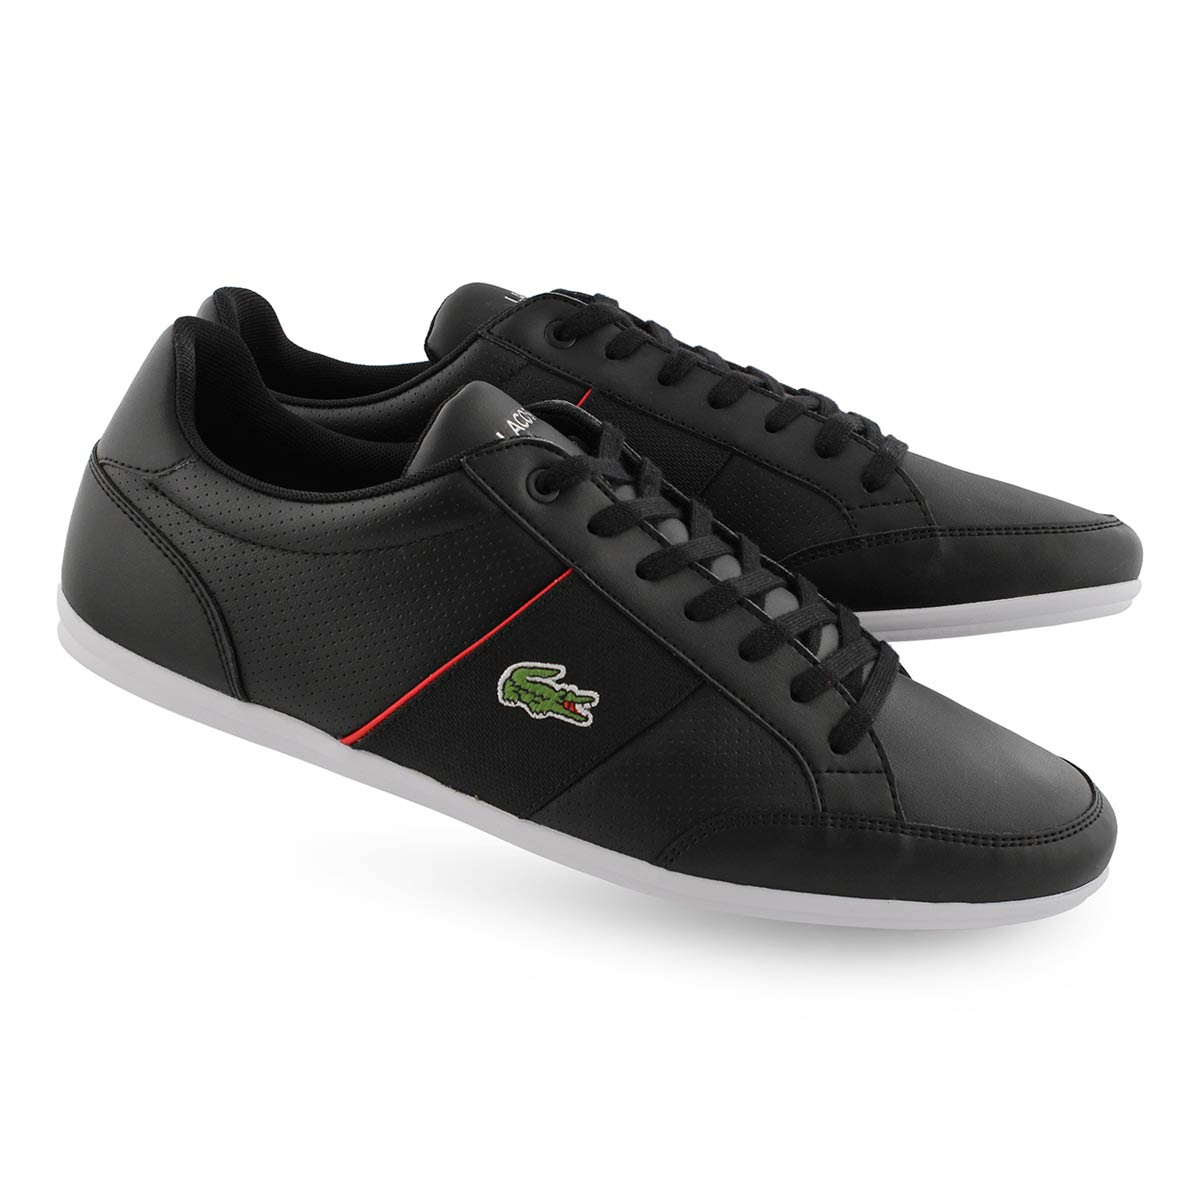 Mns Nivolor 119 1 P blk/red sneaker